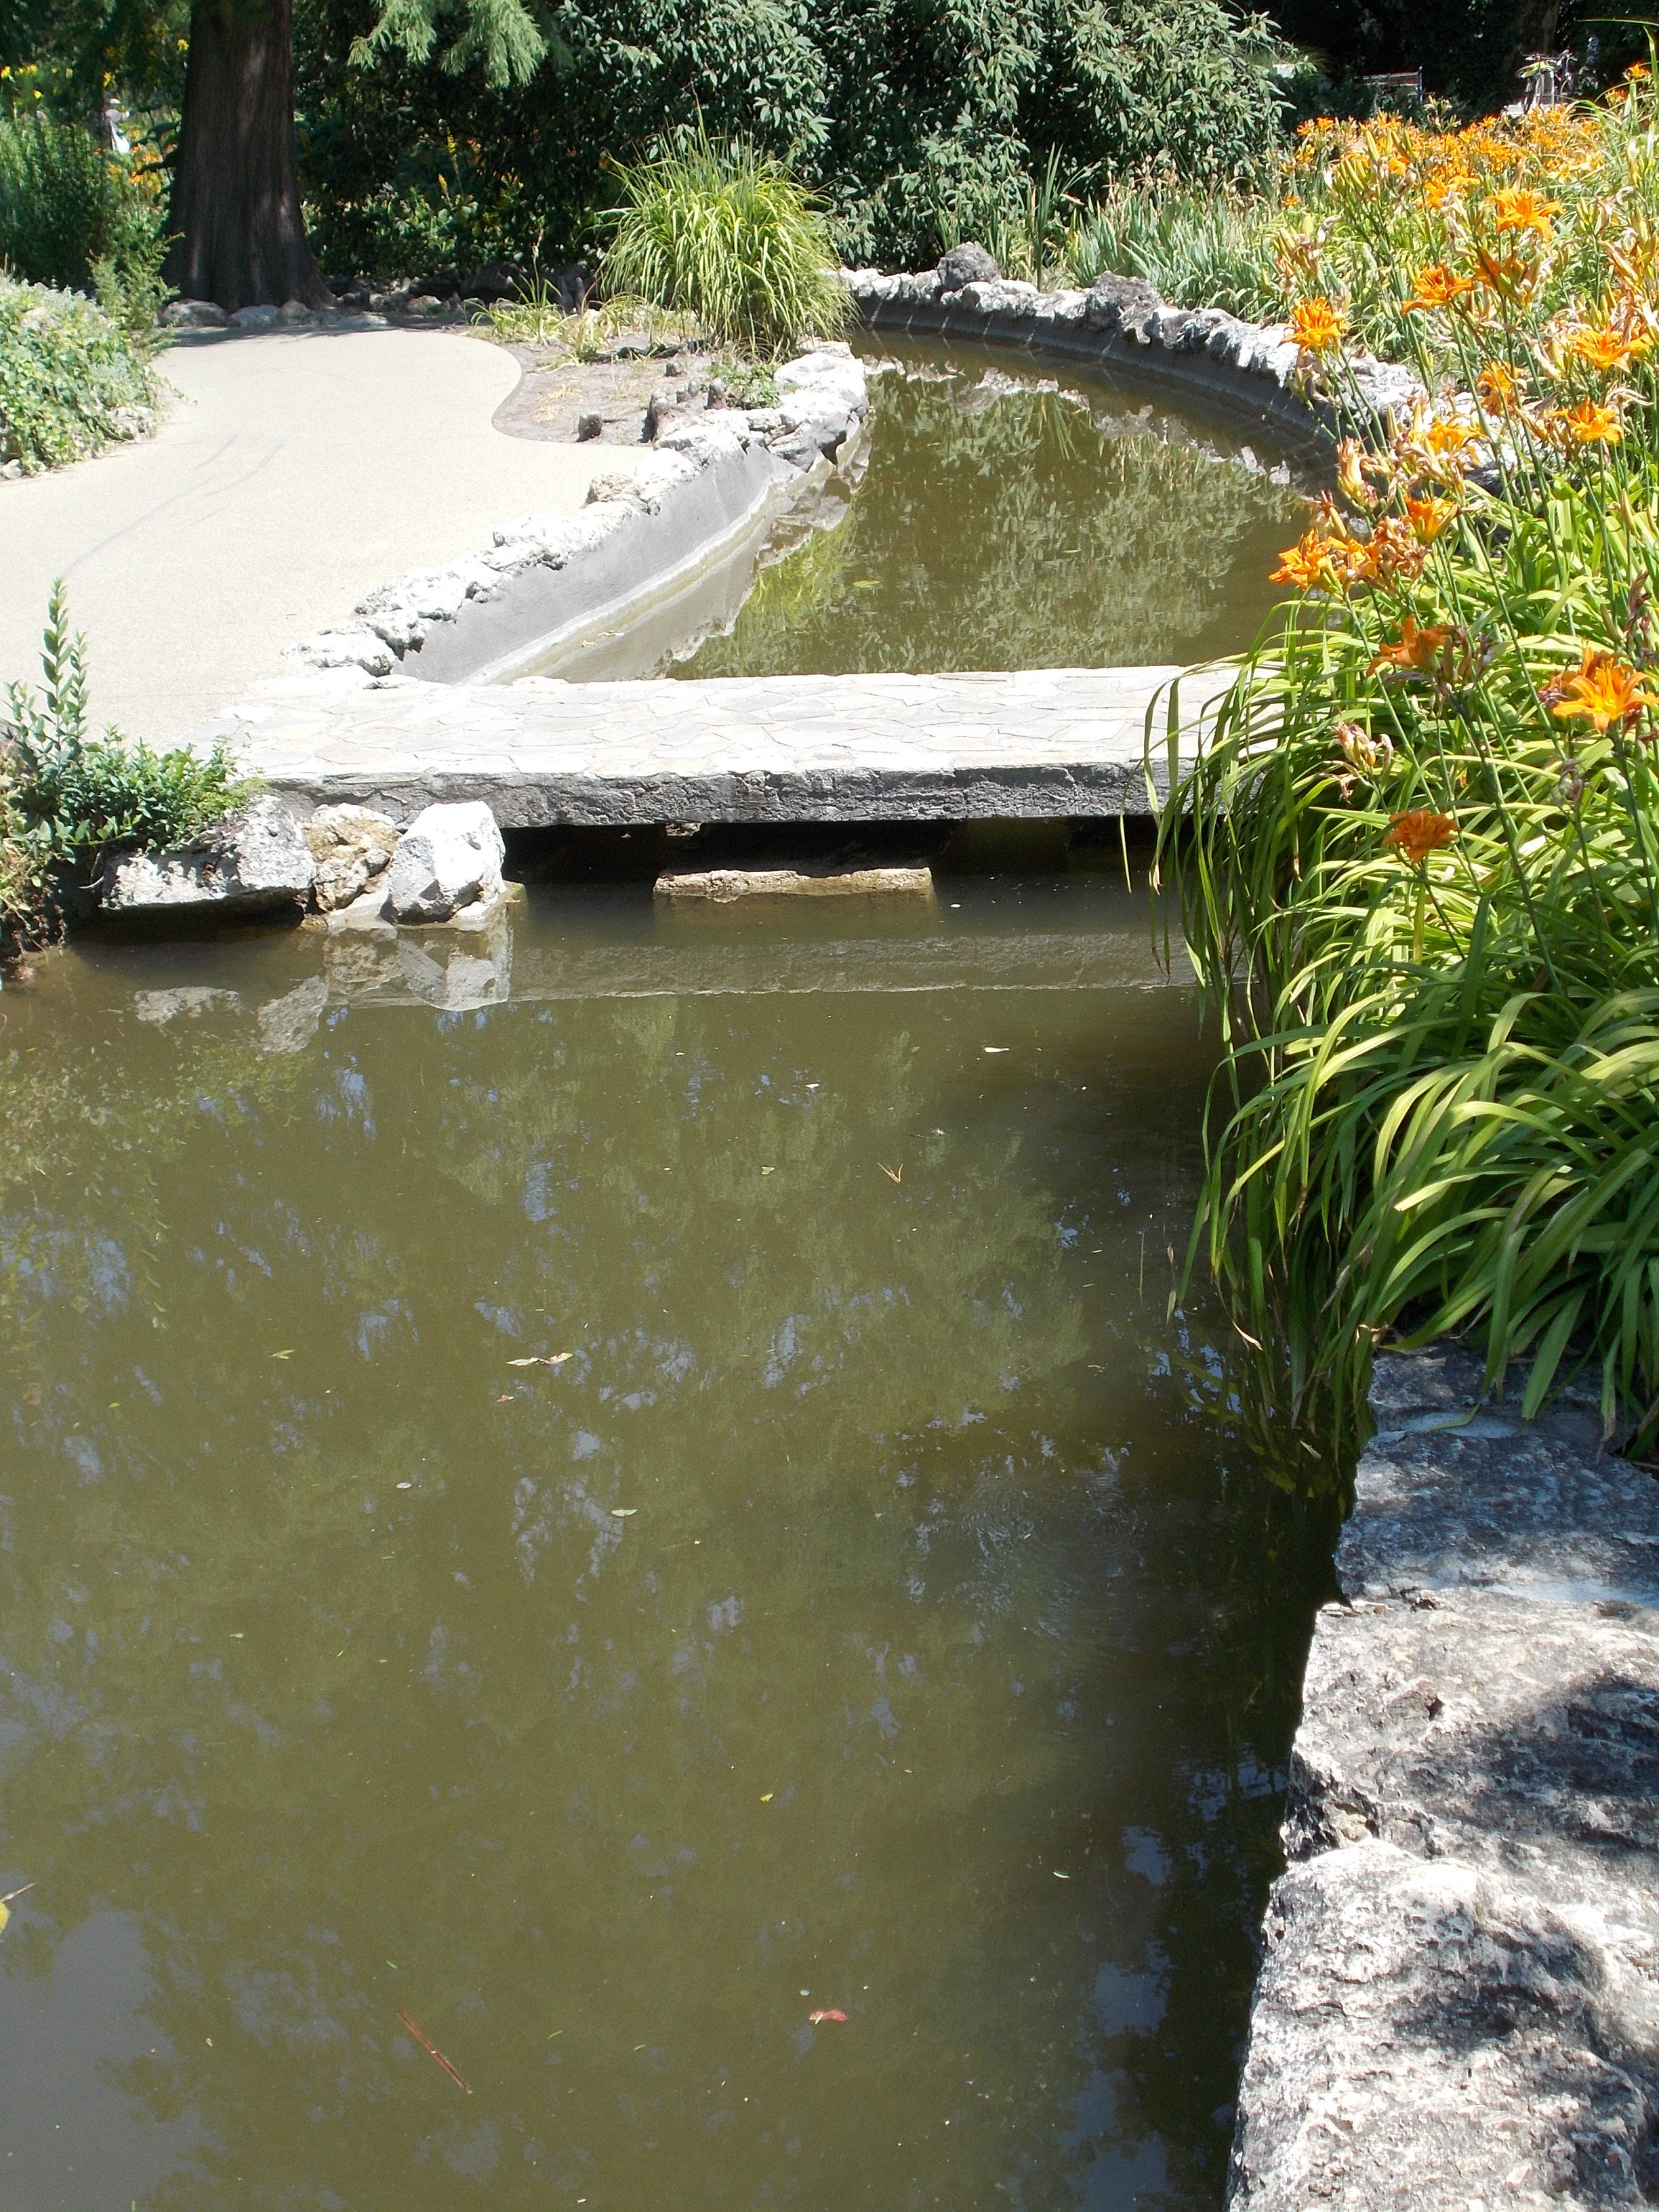 Japanese Garden Stone Bridge file:japanese garden. stone bridge over the channel. - margaret